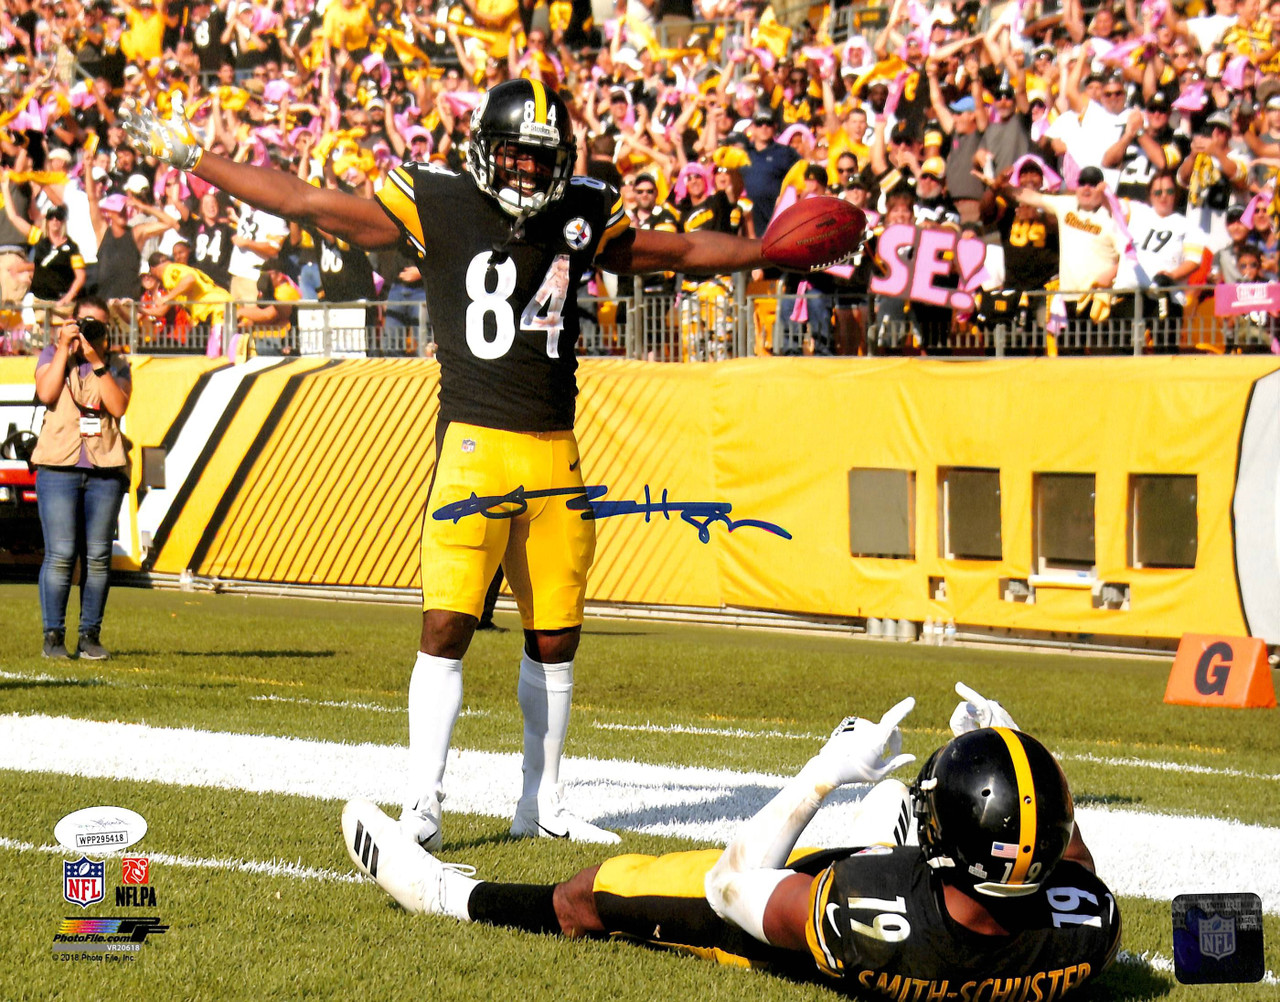 info for c9b94 6de9b Steelers Antonio Brown Authentic Signed 11x14 Photo JSA Witnessed